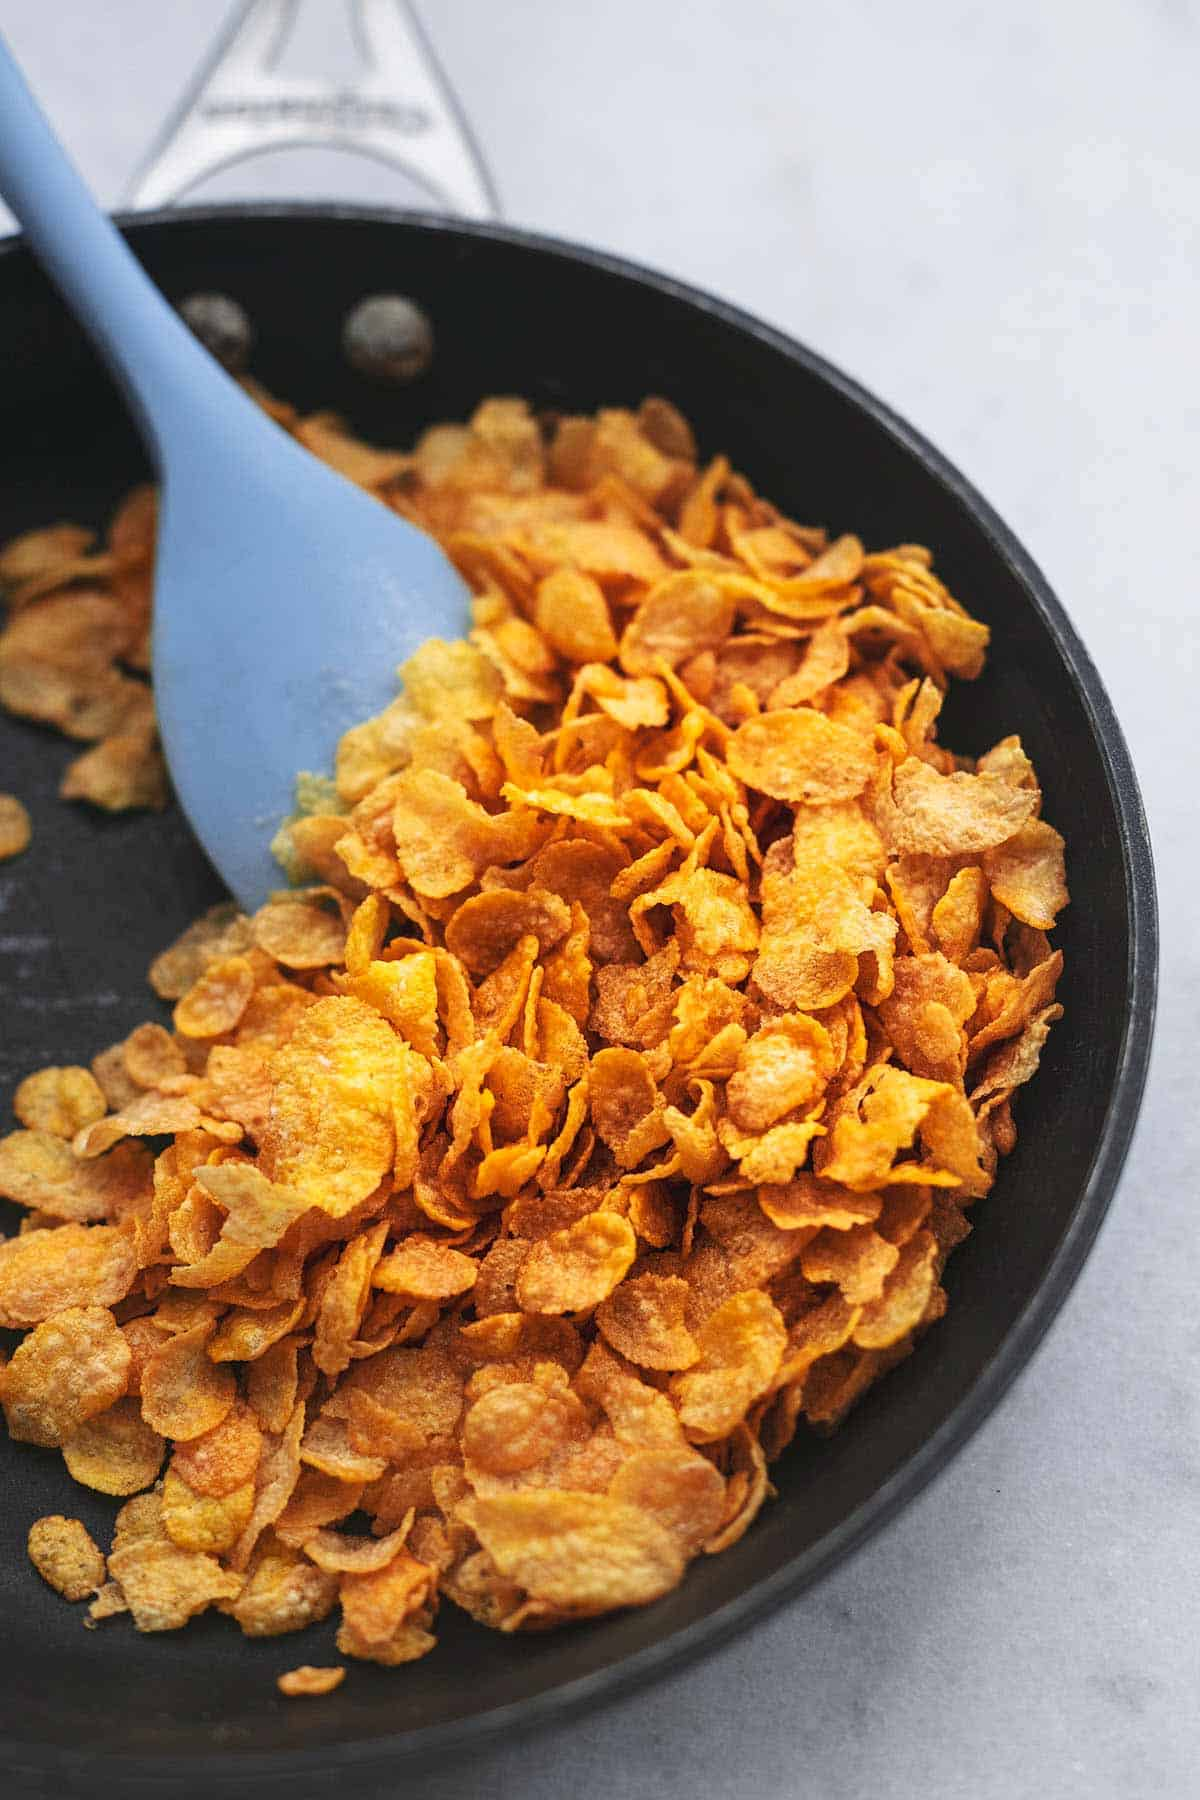 browned corn flakes in a skillet with a blue rubber spatula